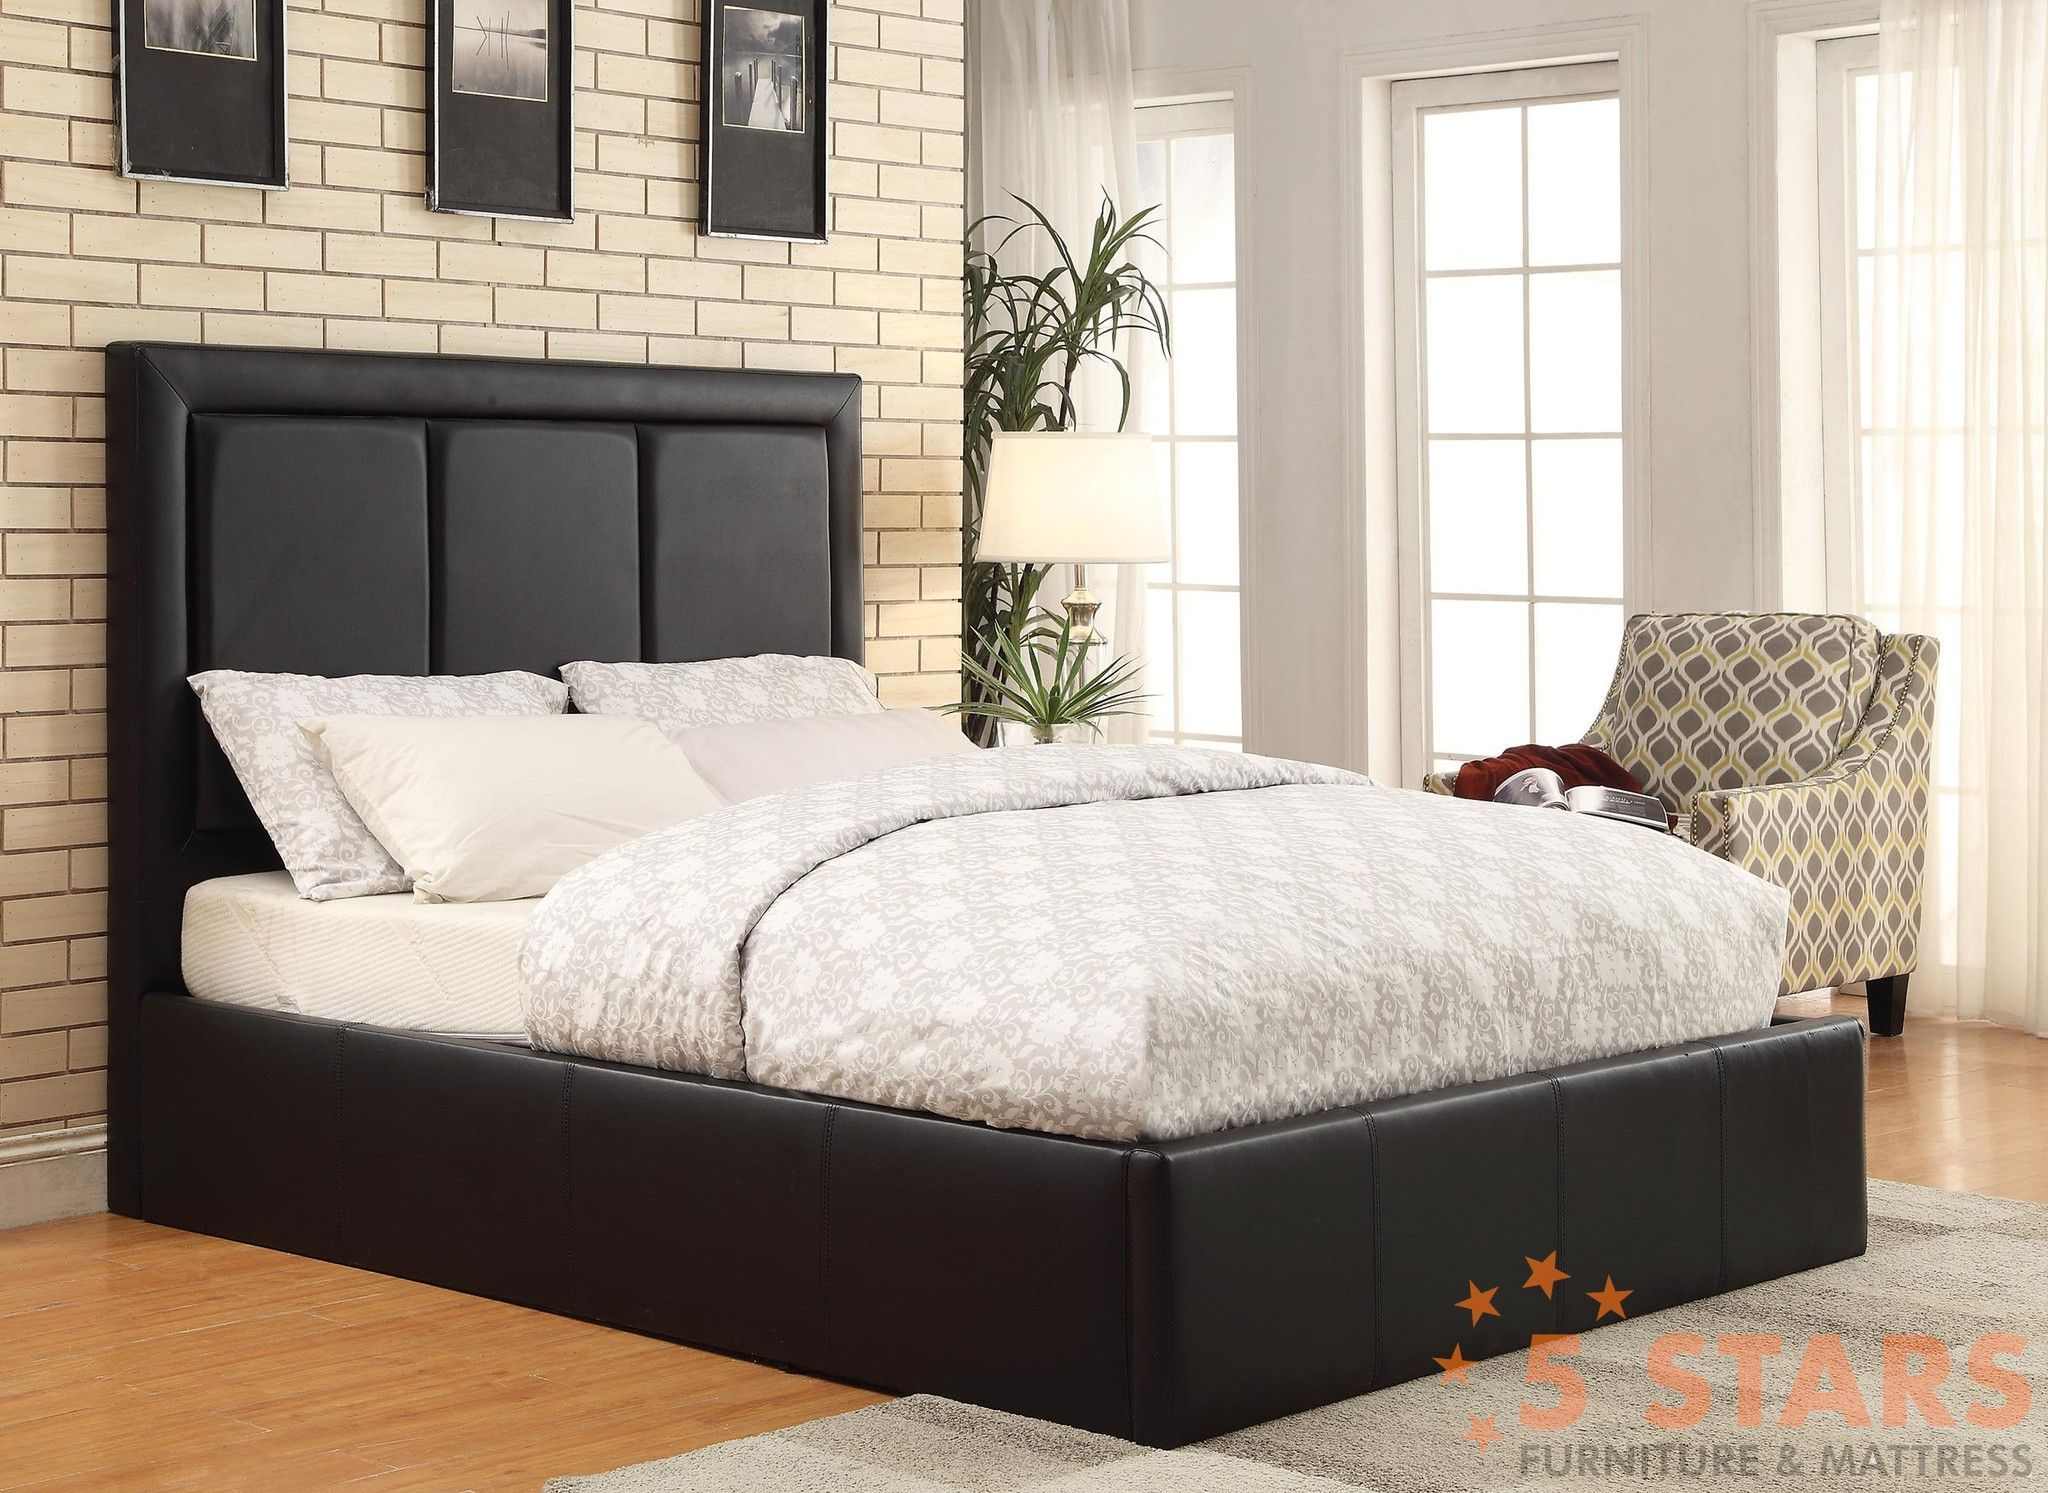 This upholstered queen bed is a perfect stylish addition to a